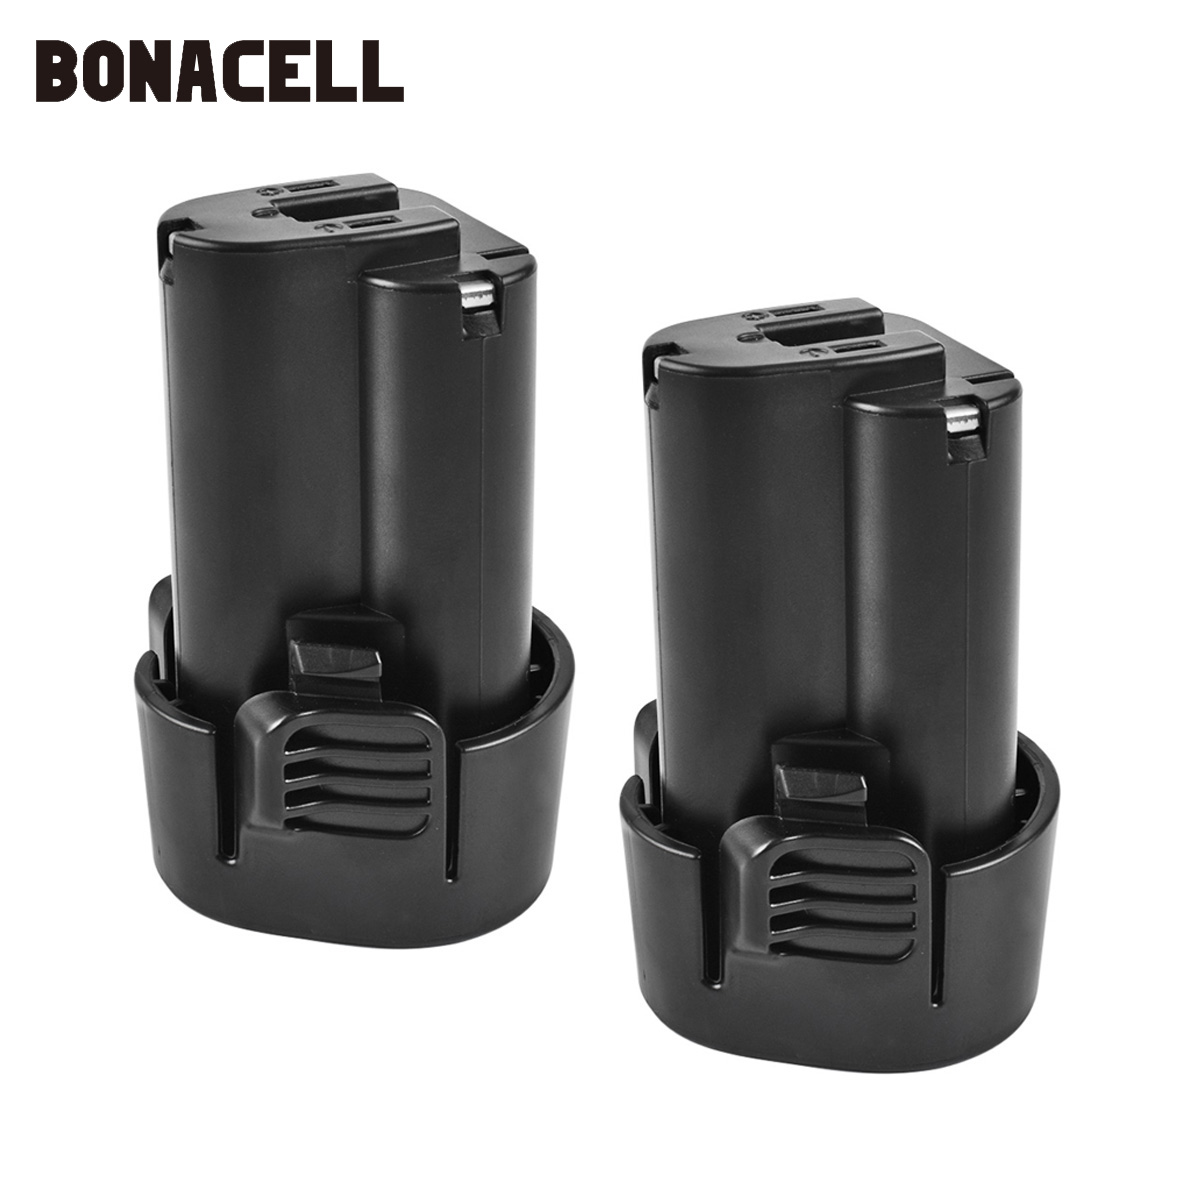 Bonacell 10.8V 1500Ah BL1013 BL-1013 Battery For Makita BL1013 194550-6 194551-4 Li Ion Replace Accumulators L50